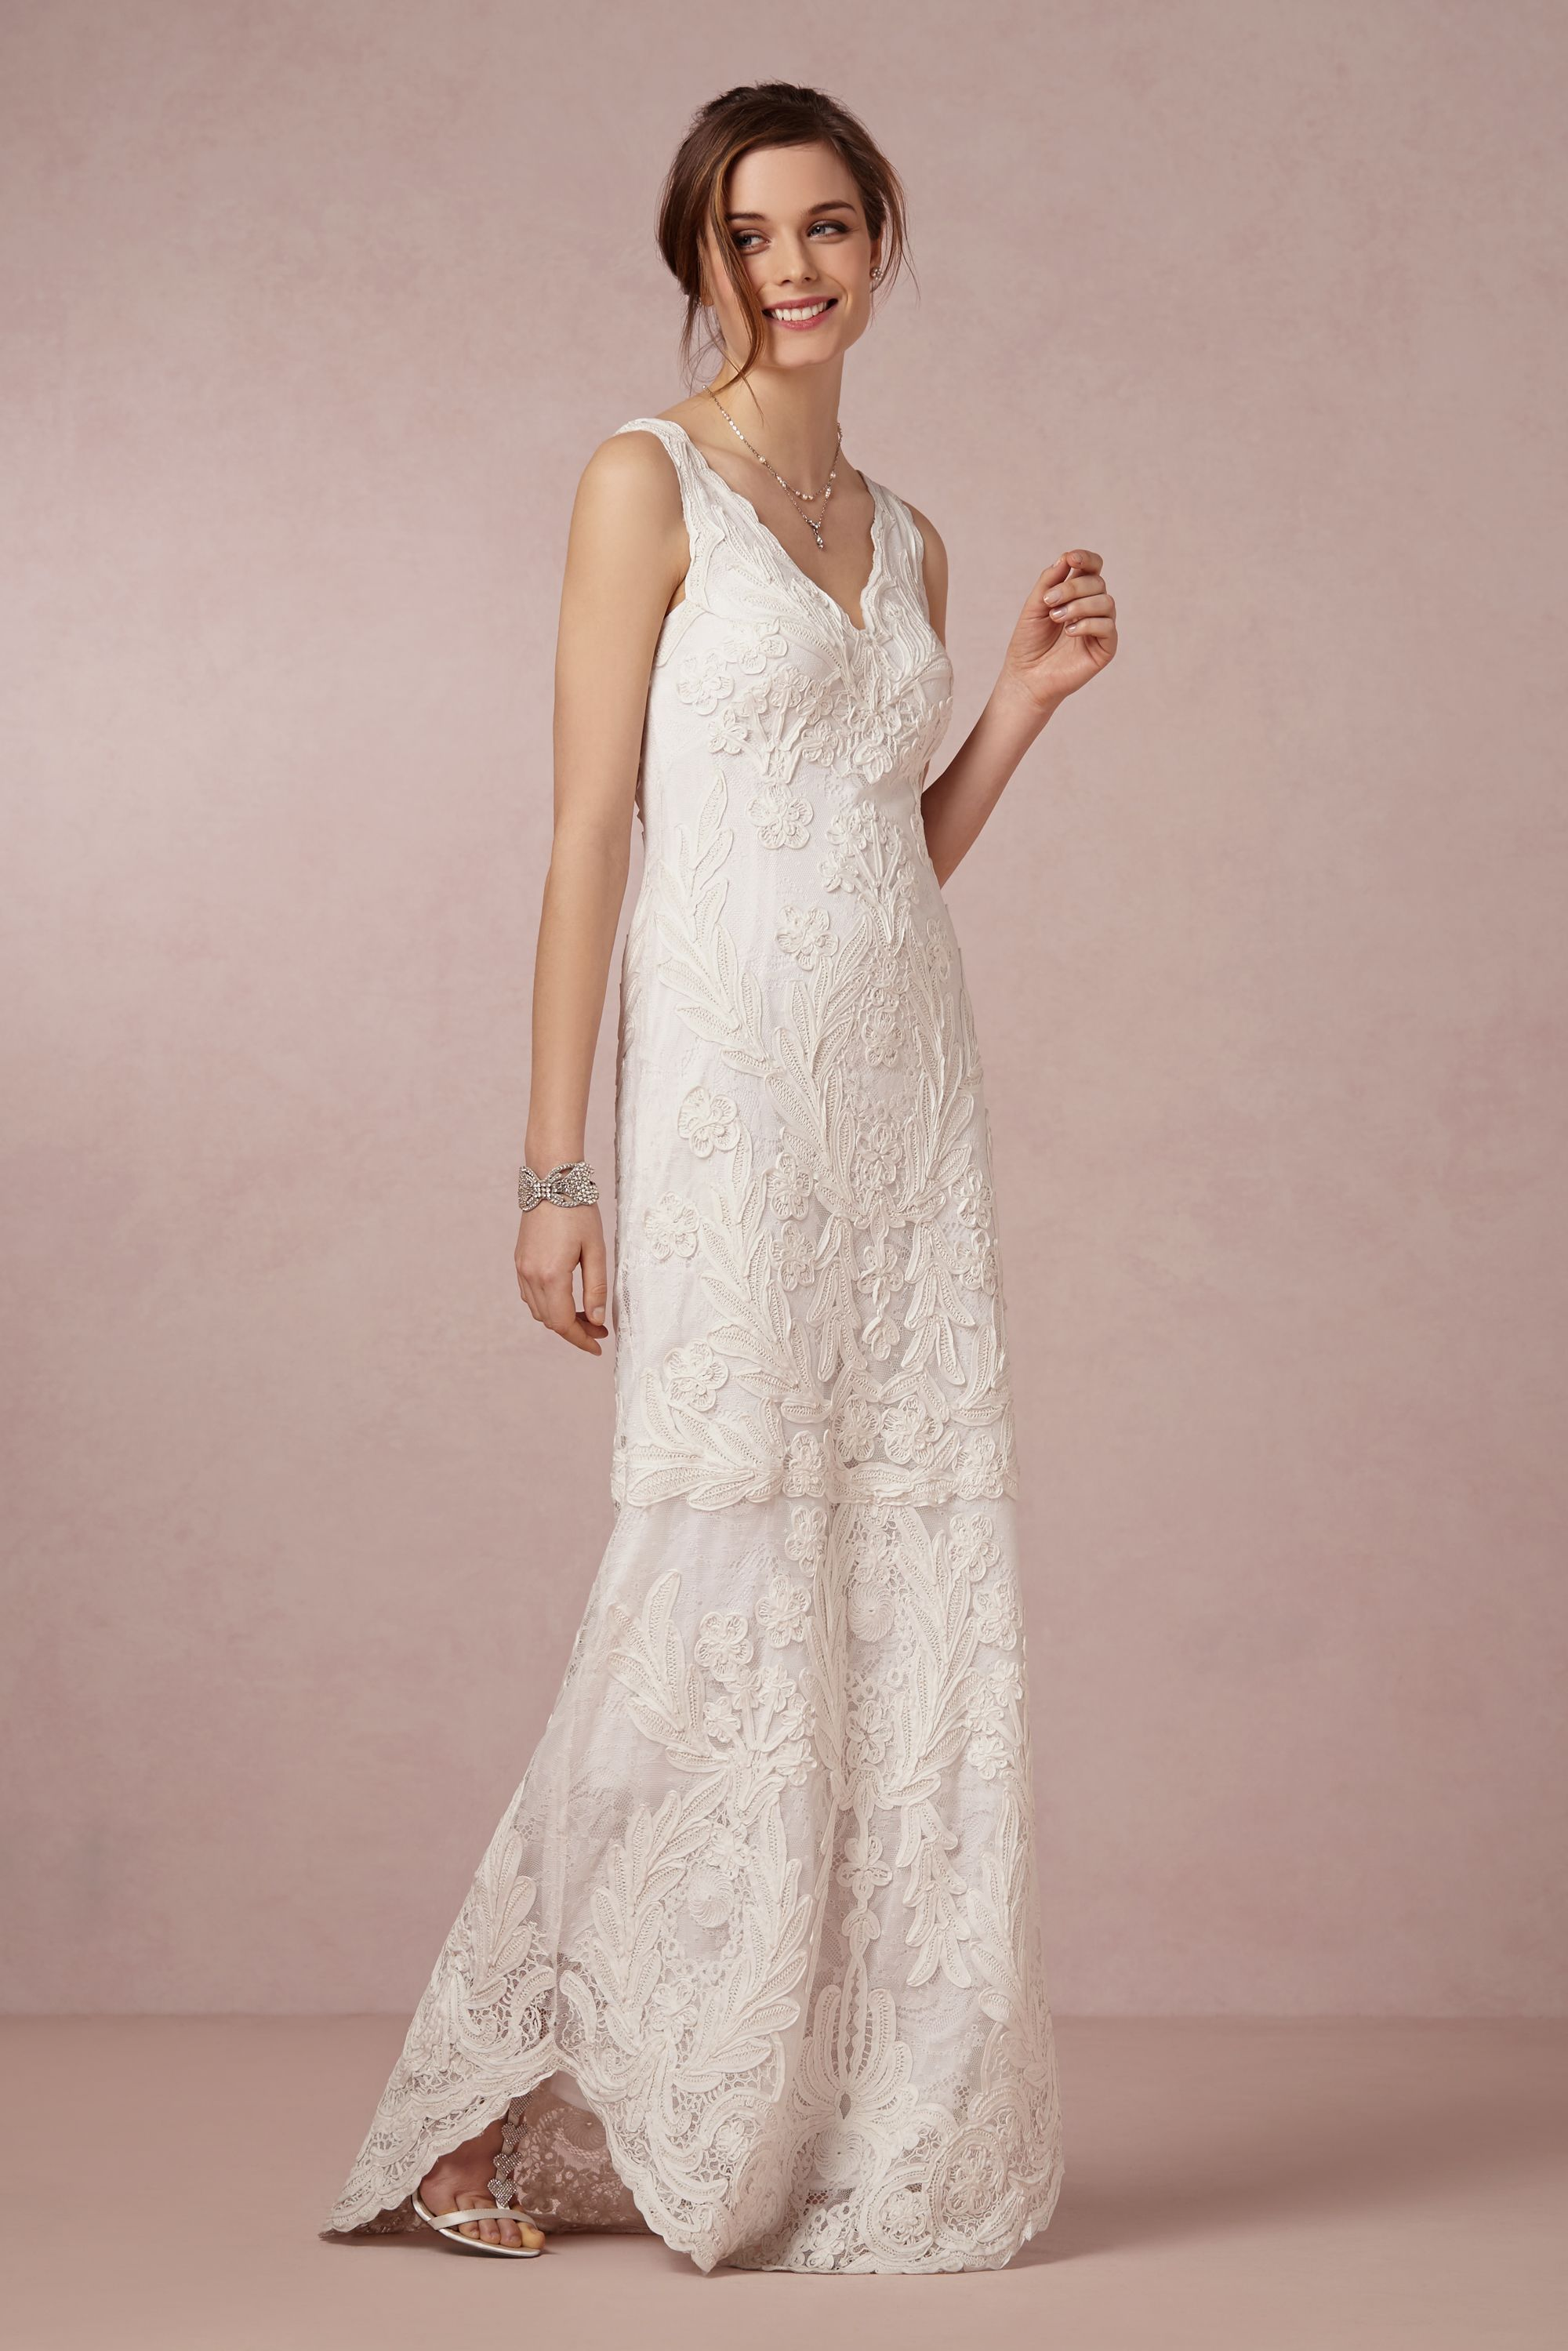 Aberdeen Gown In Bride Wedding Dresses At Bhldn Used Wedding Dresses Wedding Dresses For Sale Bhldn Wedding Dress